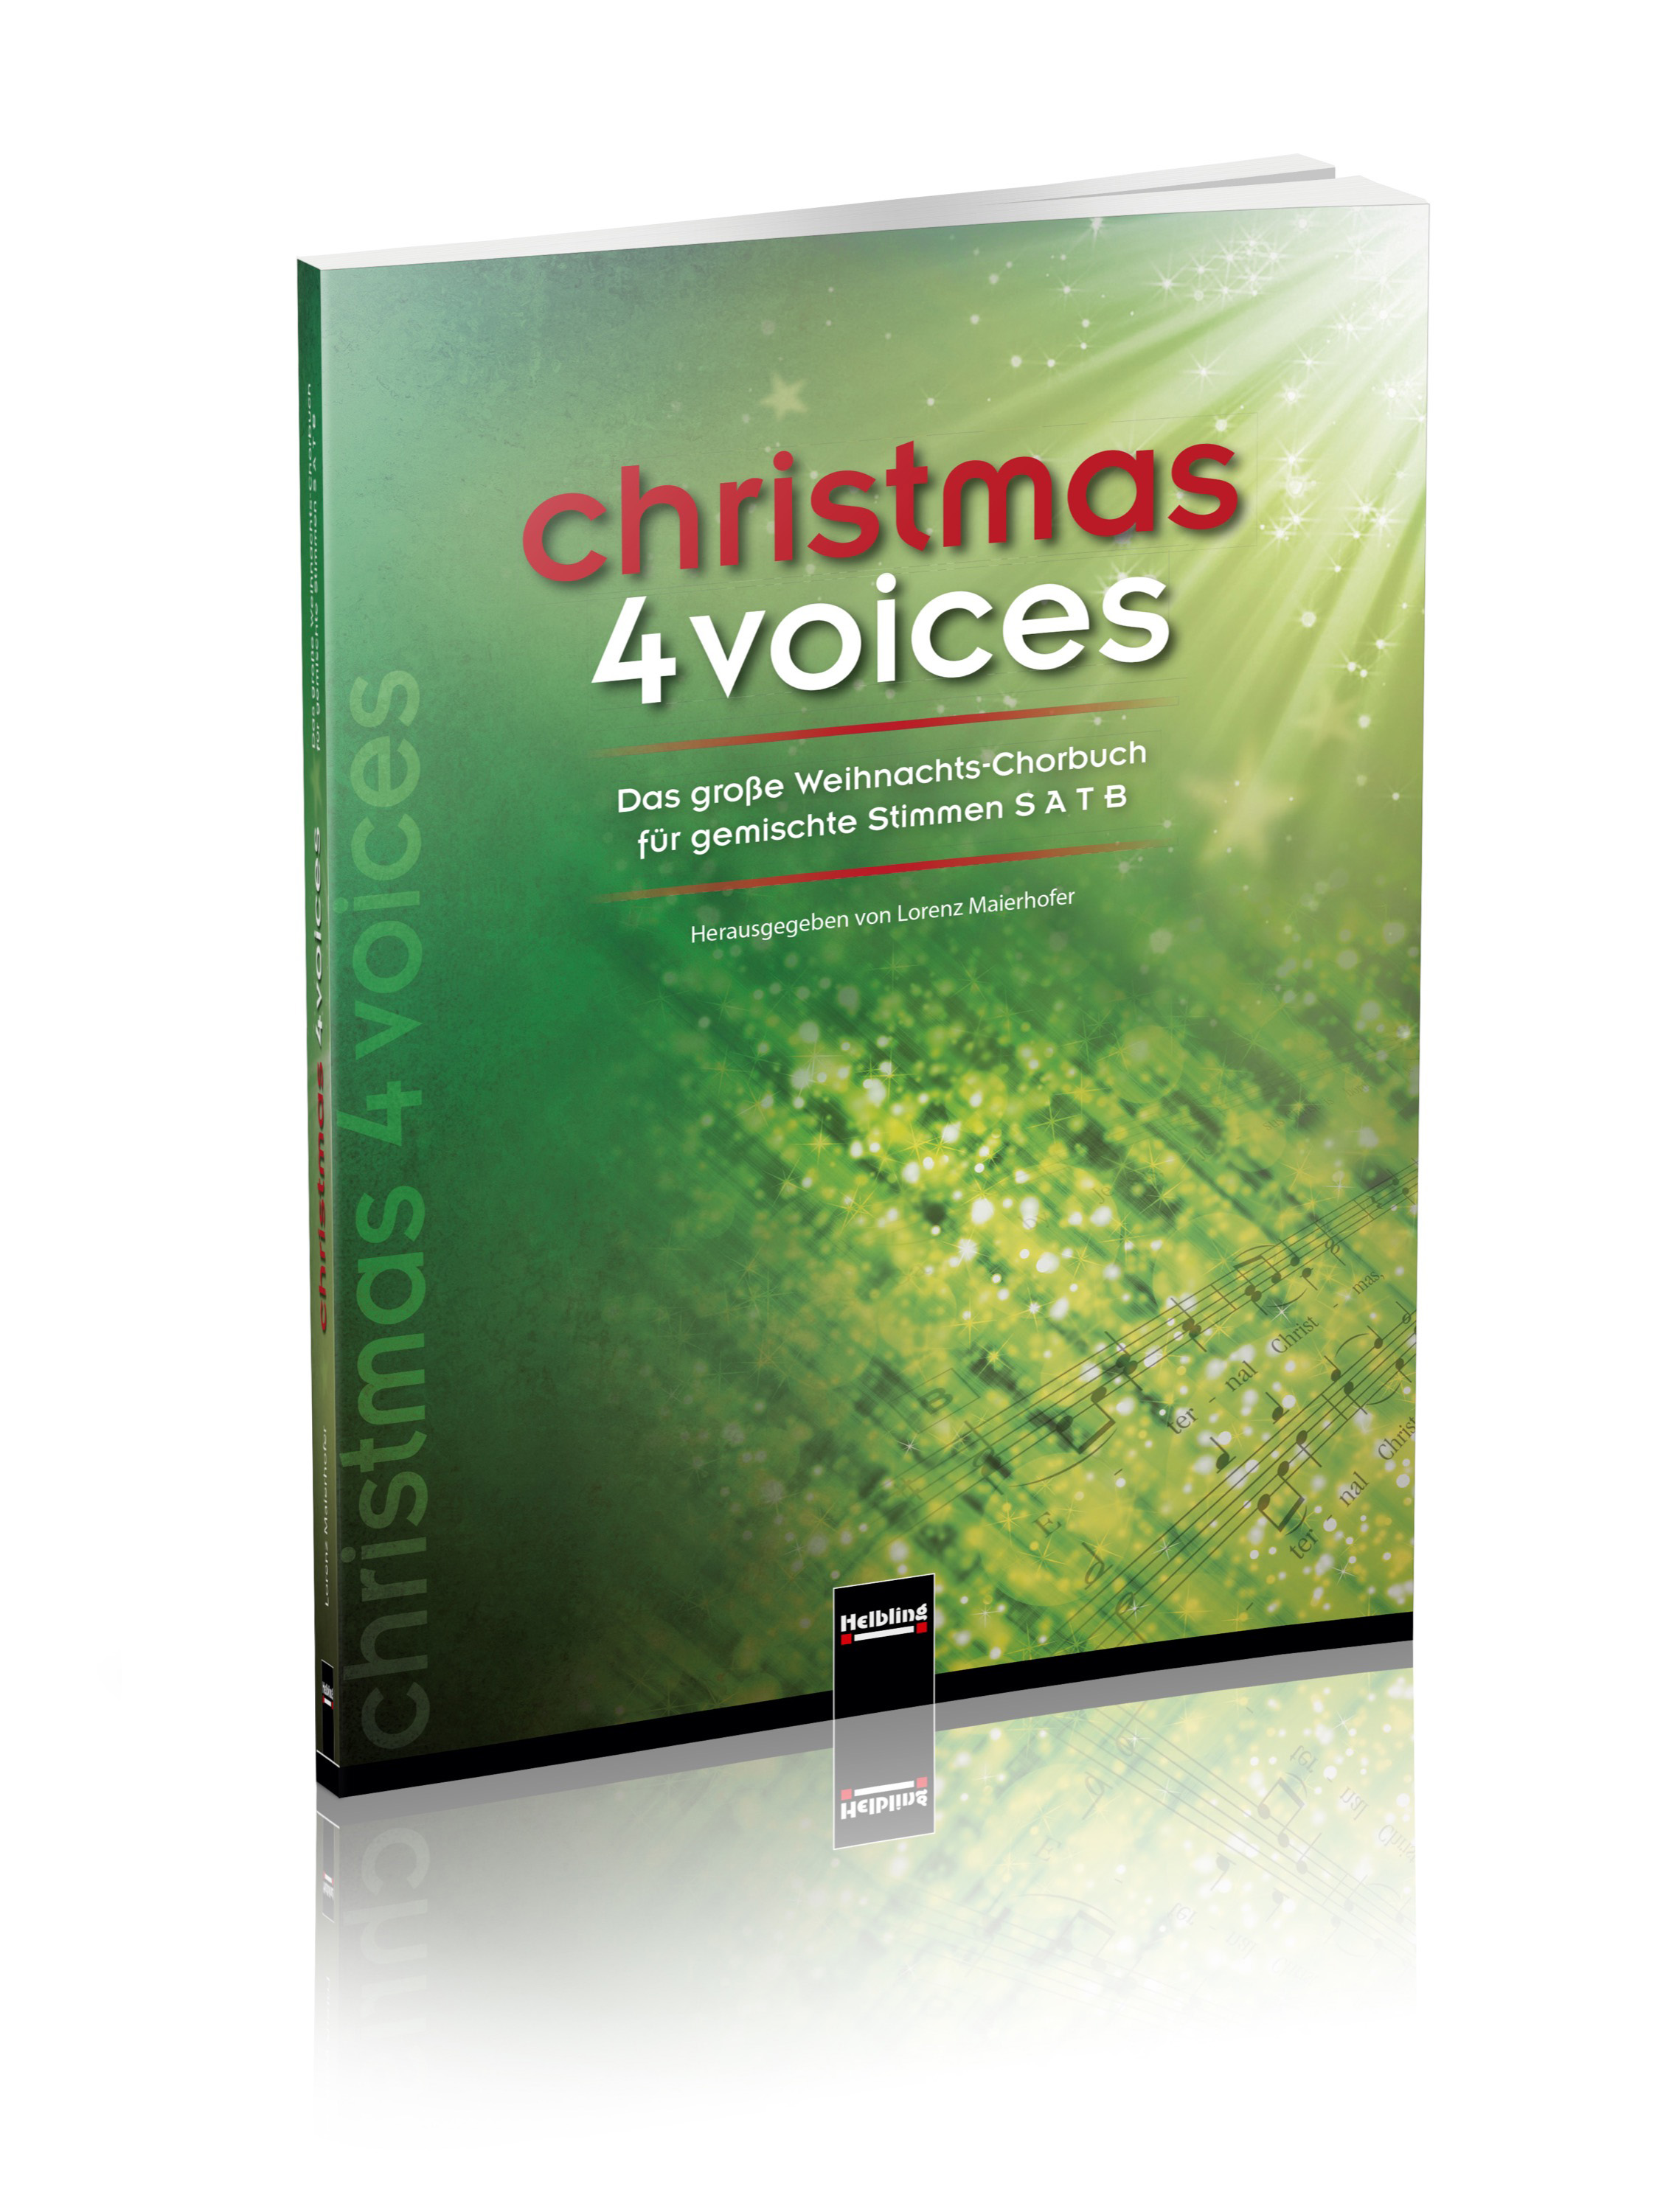 Standards_christmas_4_voices_mockup.jpg